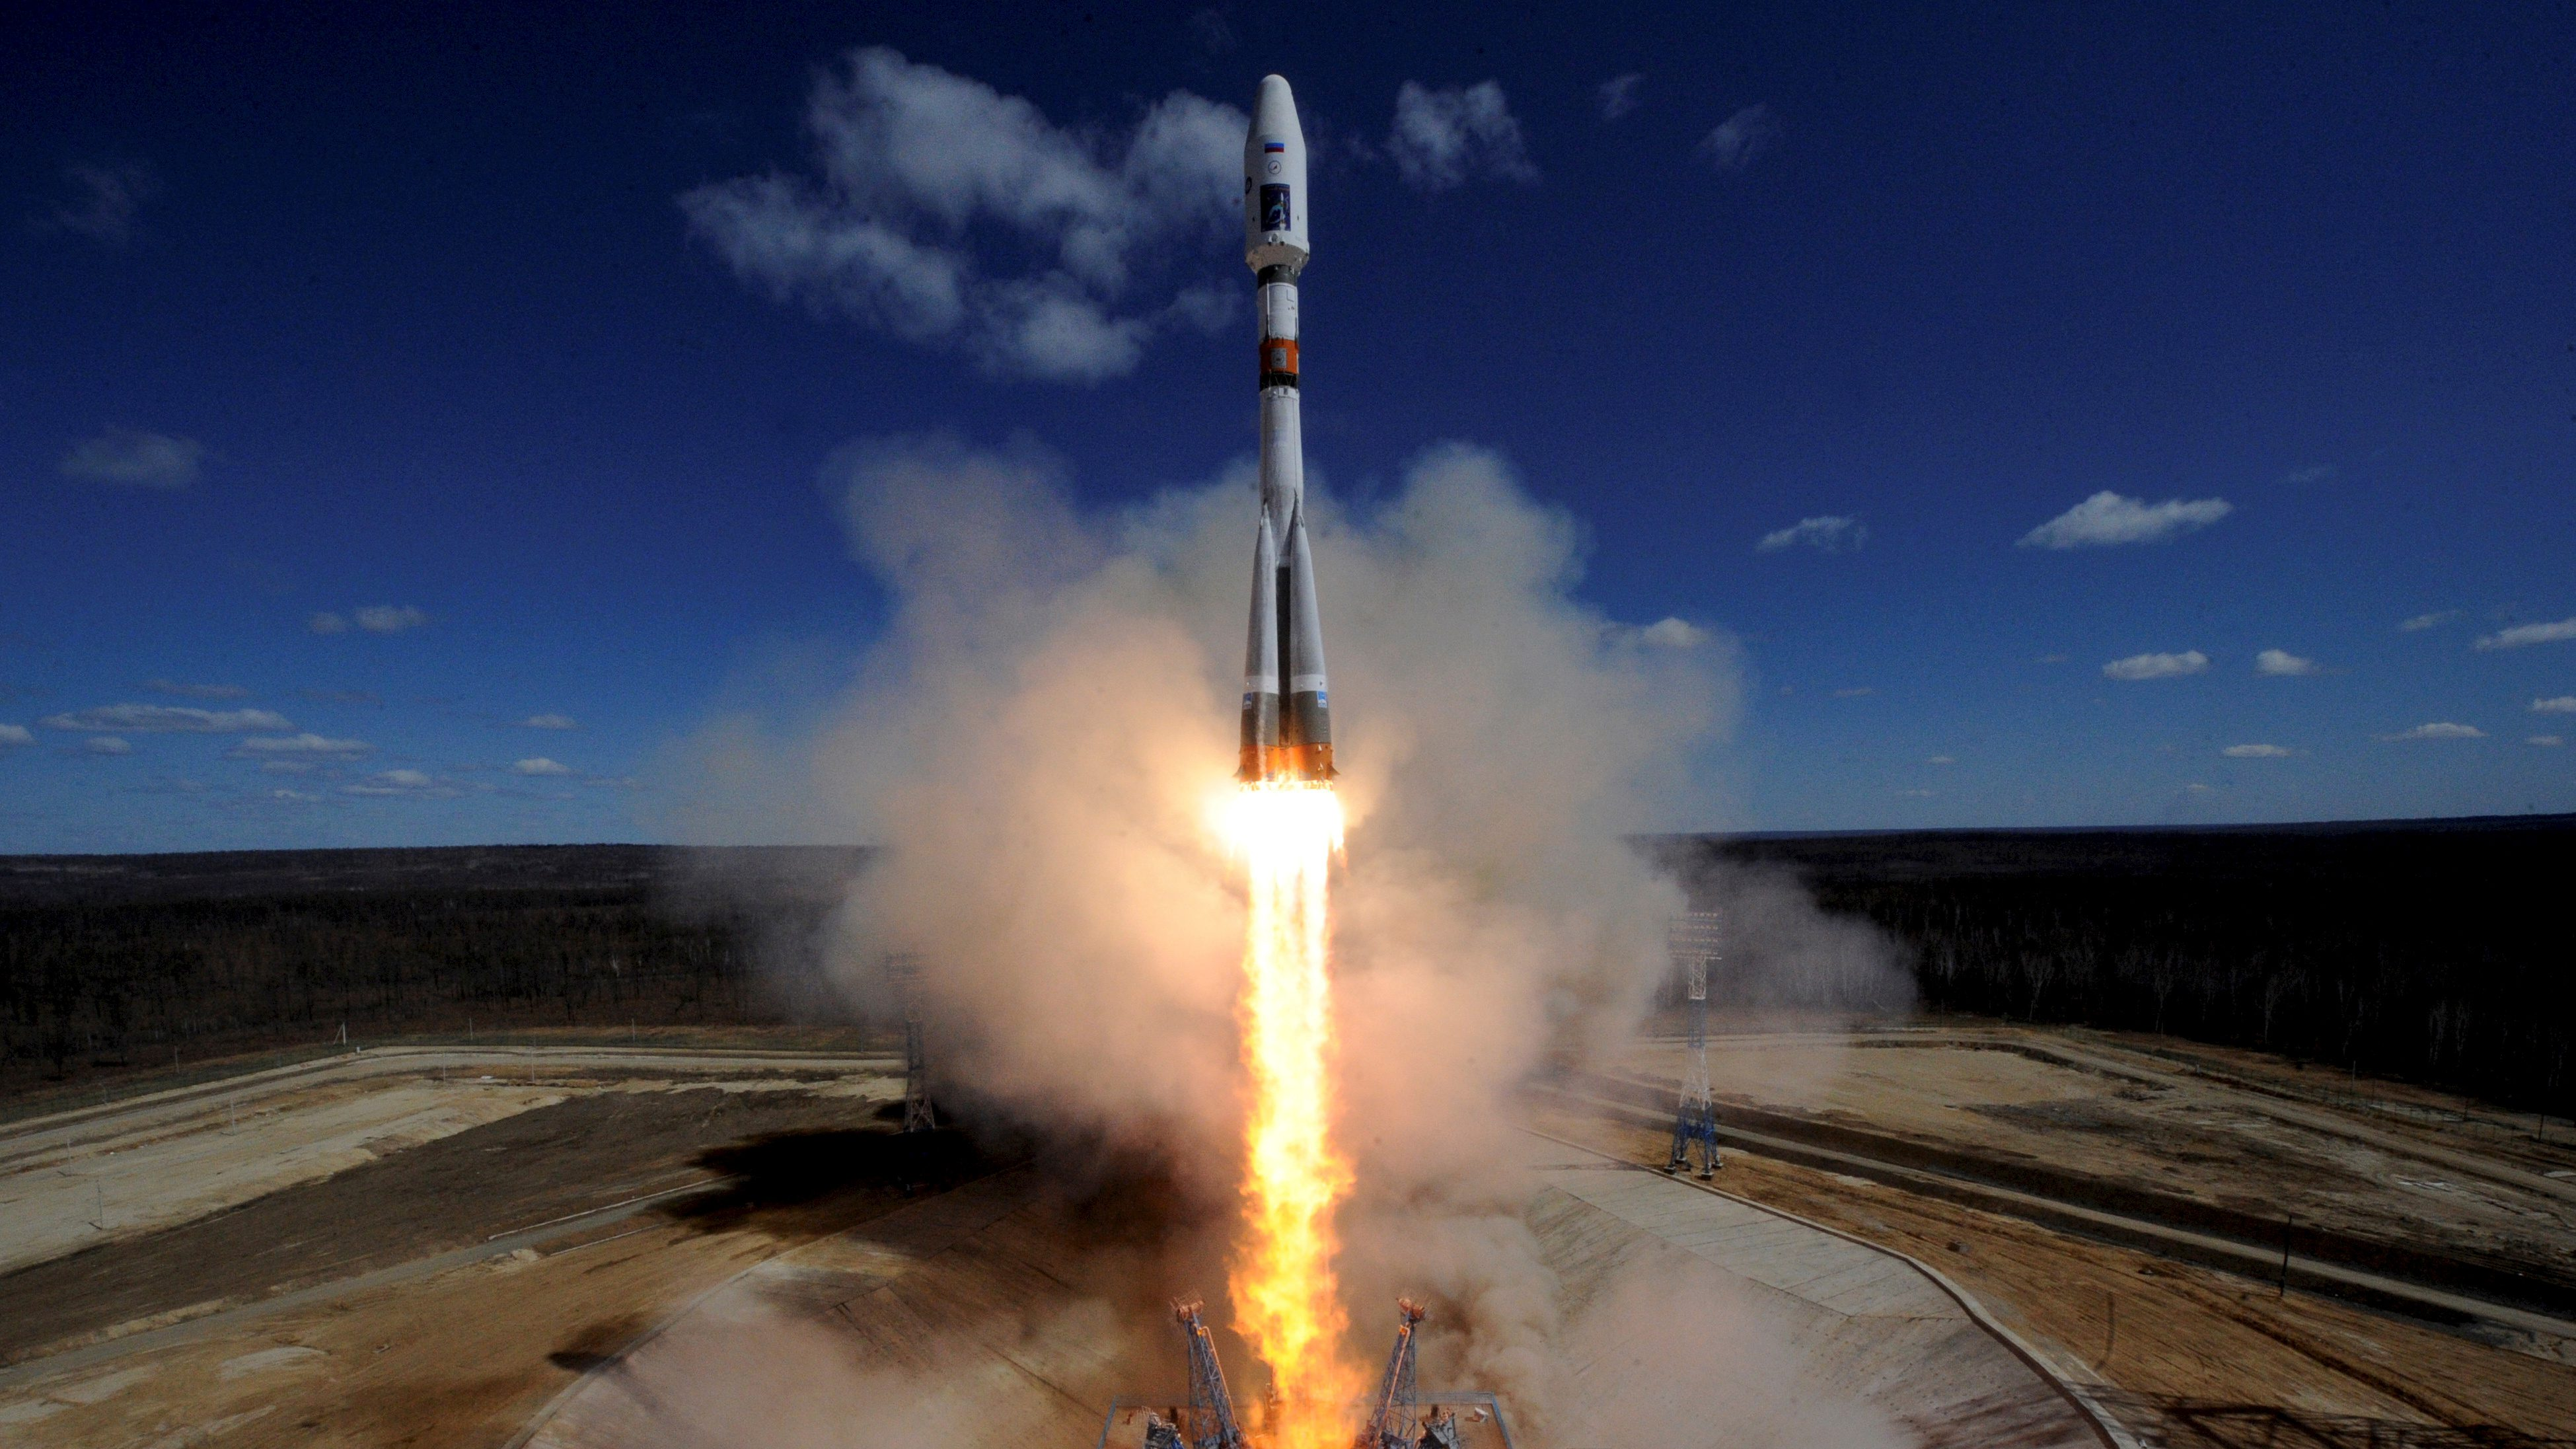 A Russian Soyuz 2.1A rocket carrying Lomonosov, Aist-2D and SamSat-218 satellites lifts off from the launch pad at the new Vostochny cosmodrome outside the city of Uglegorsk, about 200 kms from the city of Blagoveshchensk in the far eastern Amur region, Russia April 28, 2016.